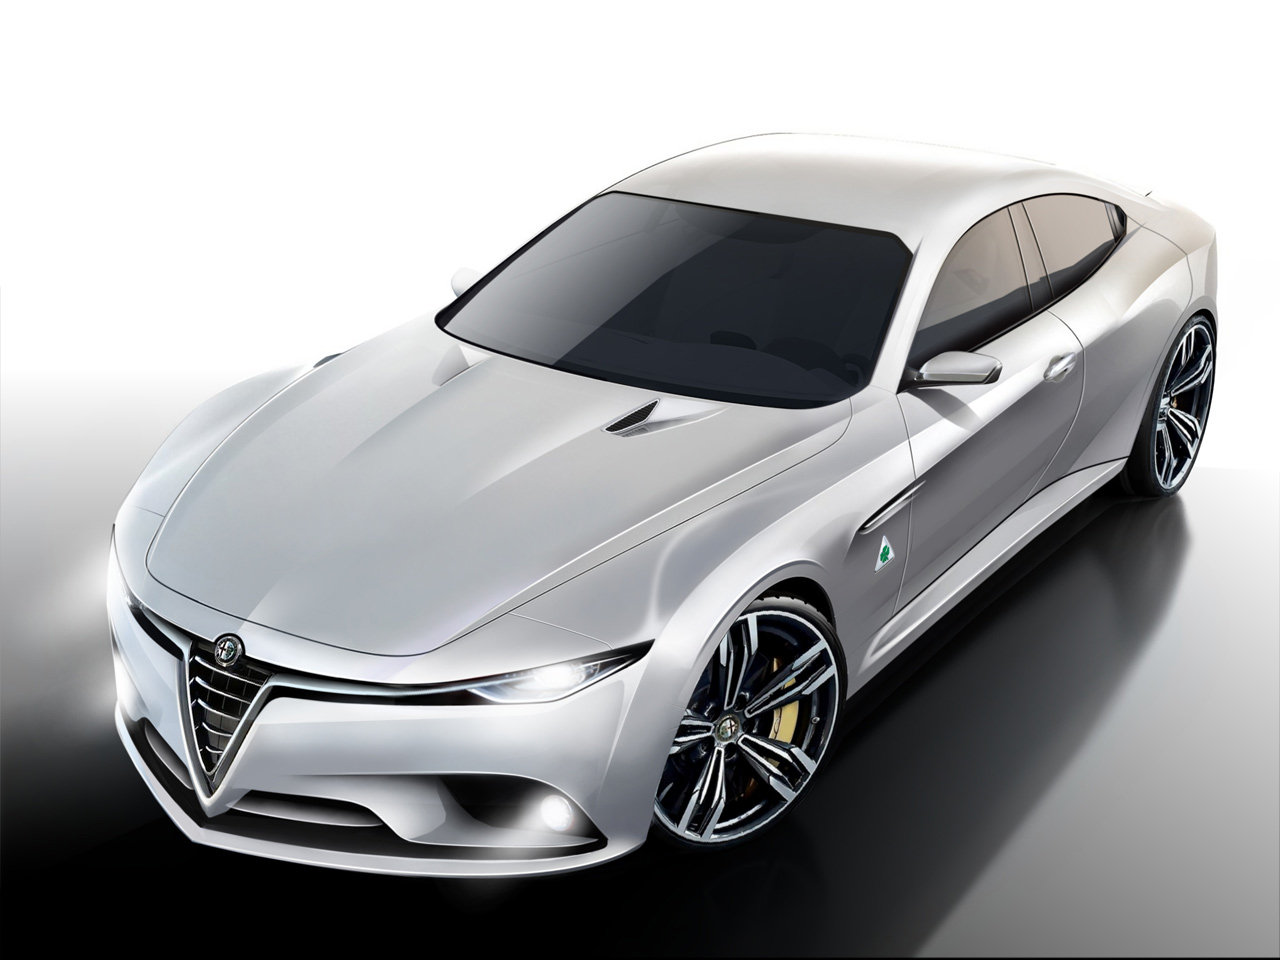 2015 Alfa Romeo Giulia Launches First Among 9 New Alfas